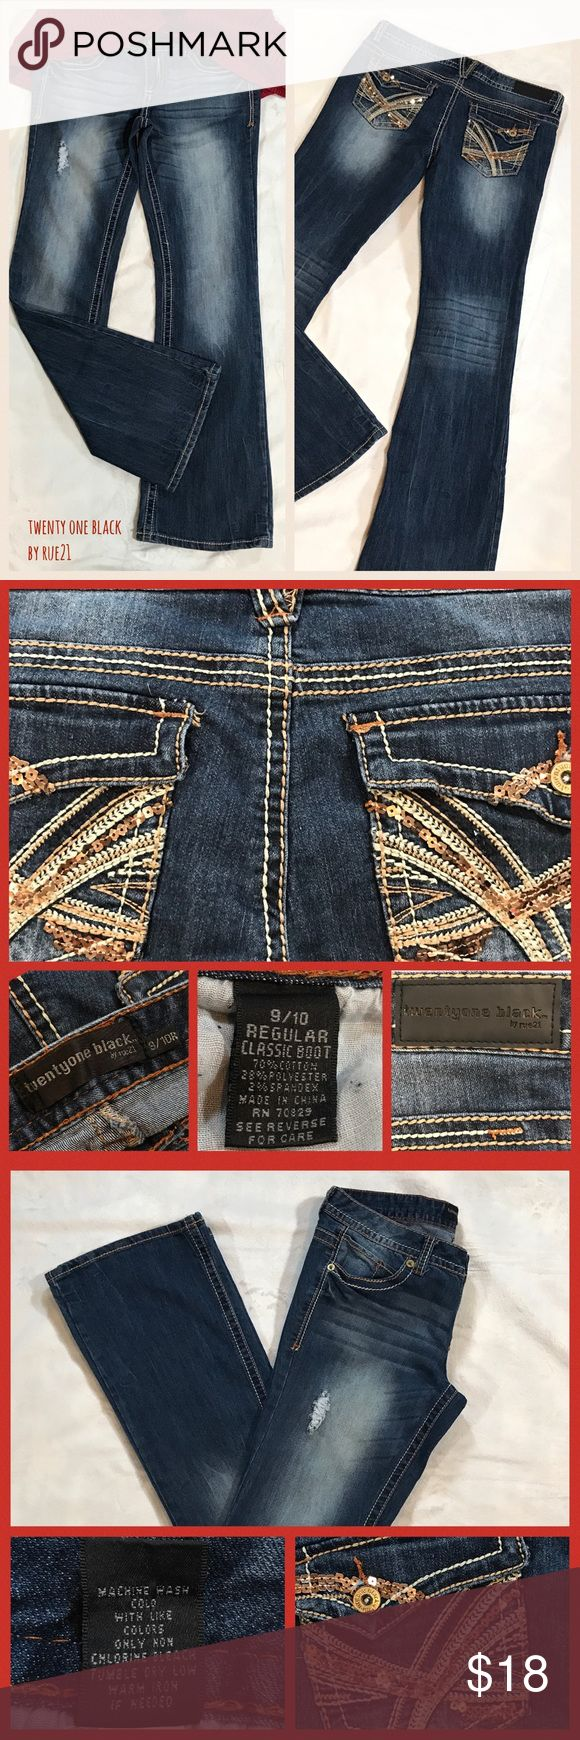 🌸Size 9/10 Twenty One Black Bootcut Jeans-rue21 •Twenty One Black by rue21 •Worn once •Size: 9/10 Regular •Classic boot *one stitch looks like it is coming up* indicated on pic •Please ask questions prior to purchasing •THANK YOU •HAPPY POSHING🌼 •Deb 🌺 Rue 21 Jeans Boot Cut